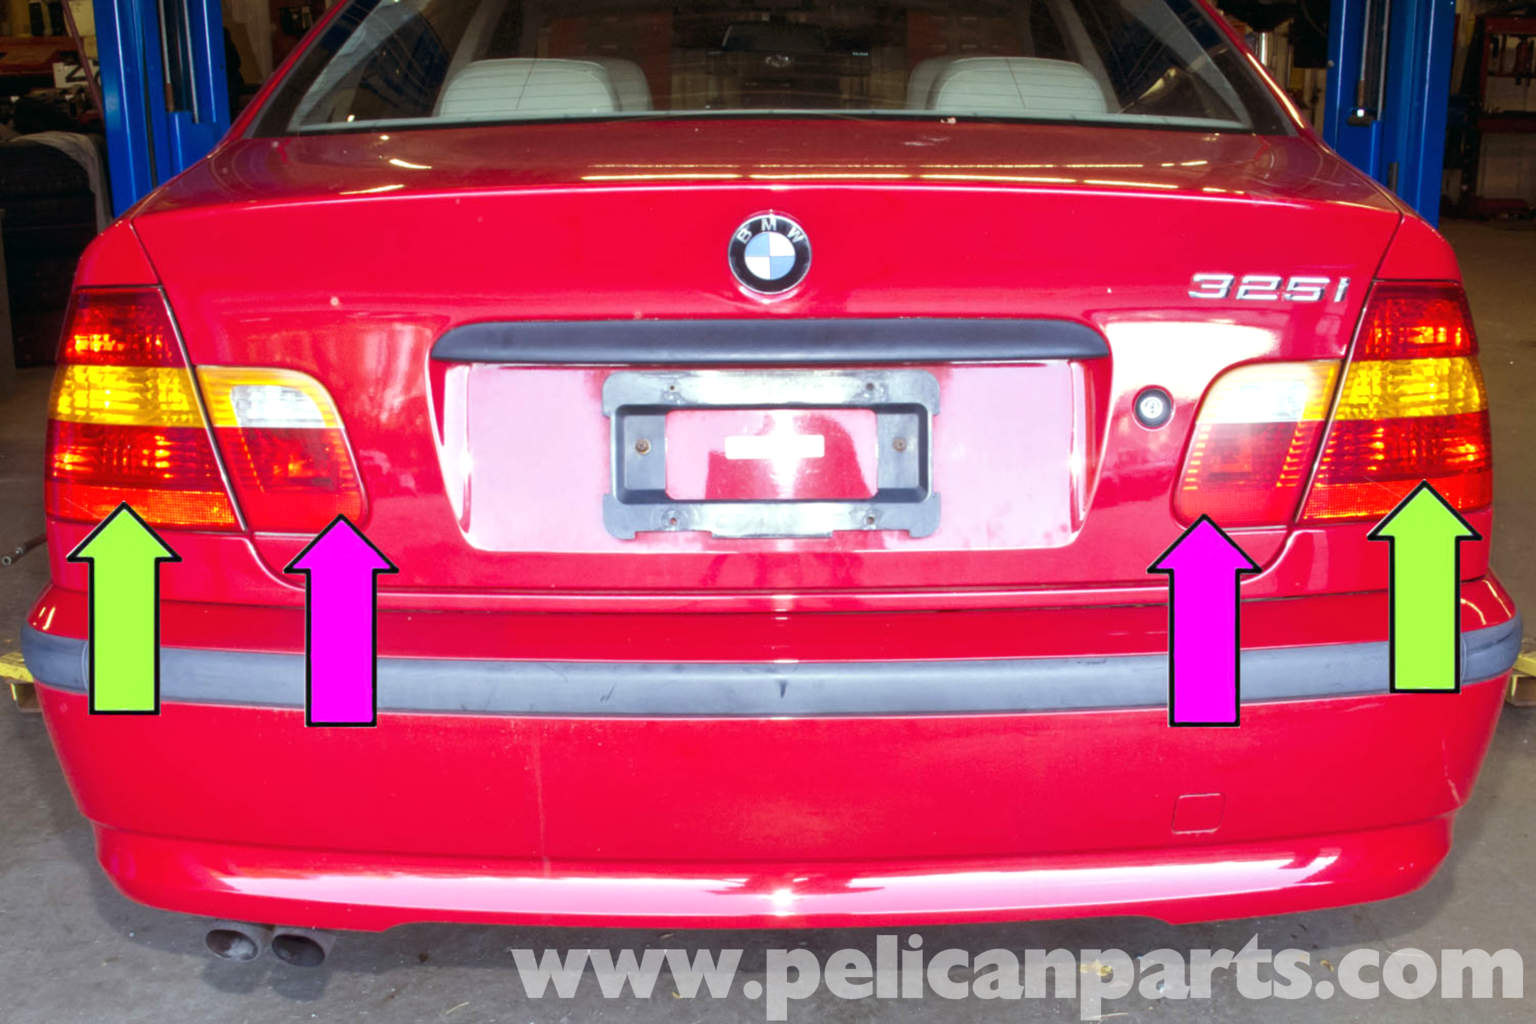 pic01 bmw e46 rear tail light replacement bmw 325i (2001 2005), bmw bmw tail light bulb socket wiring harness plug repair kit at cos-gaming.co